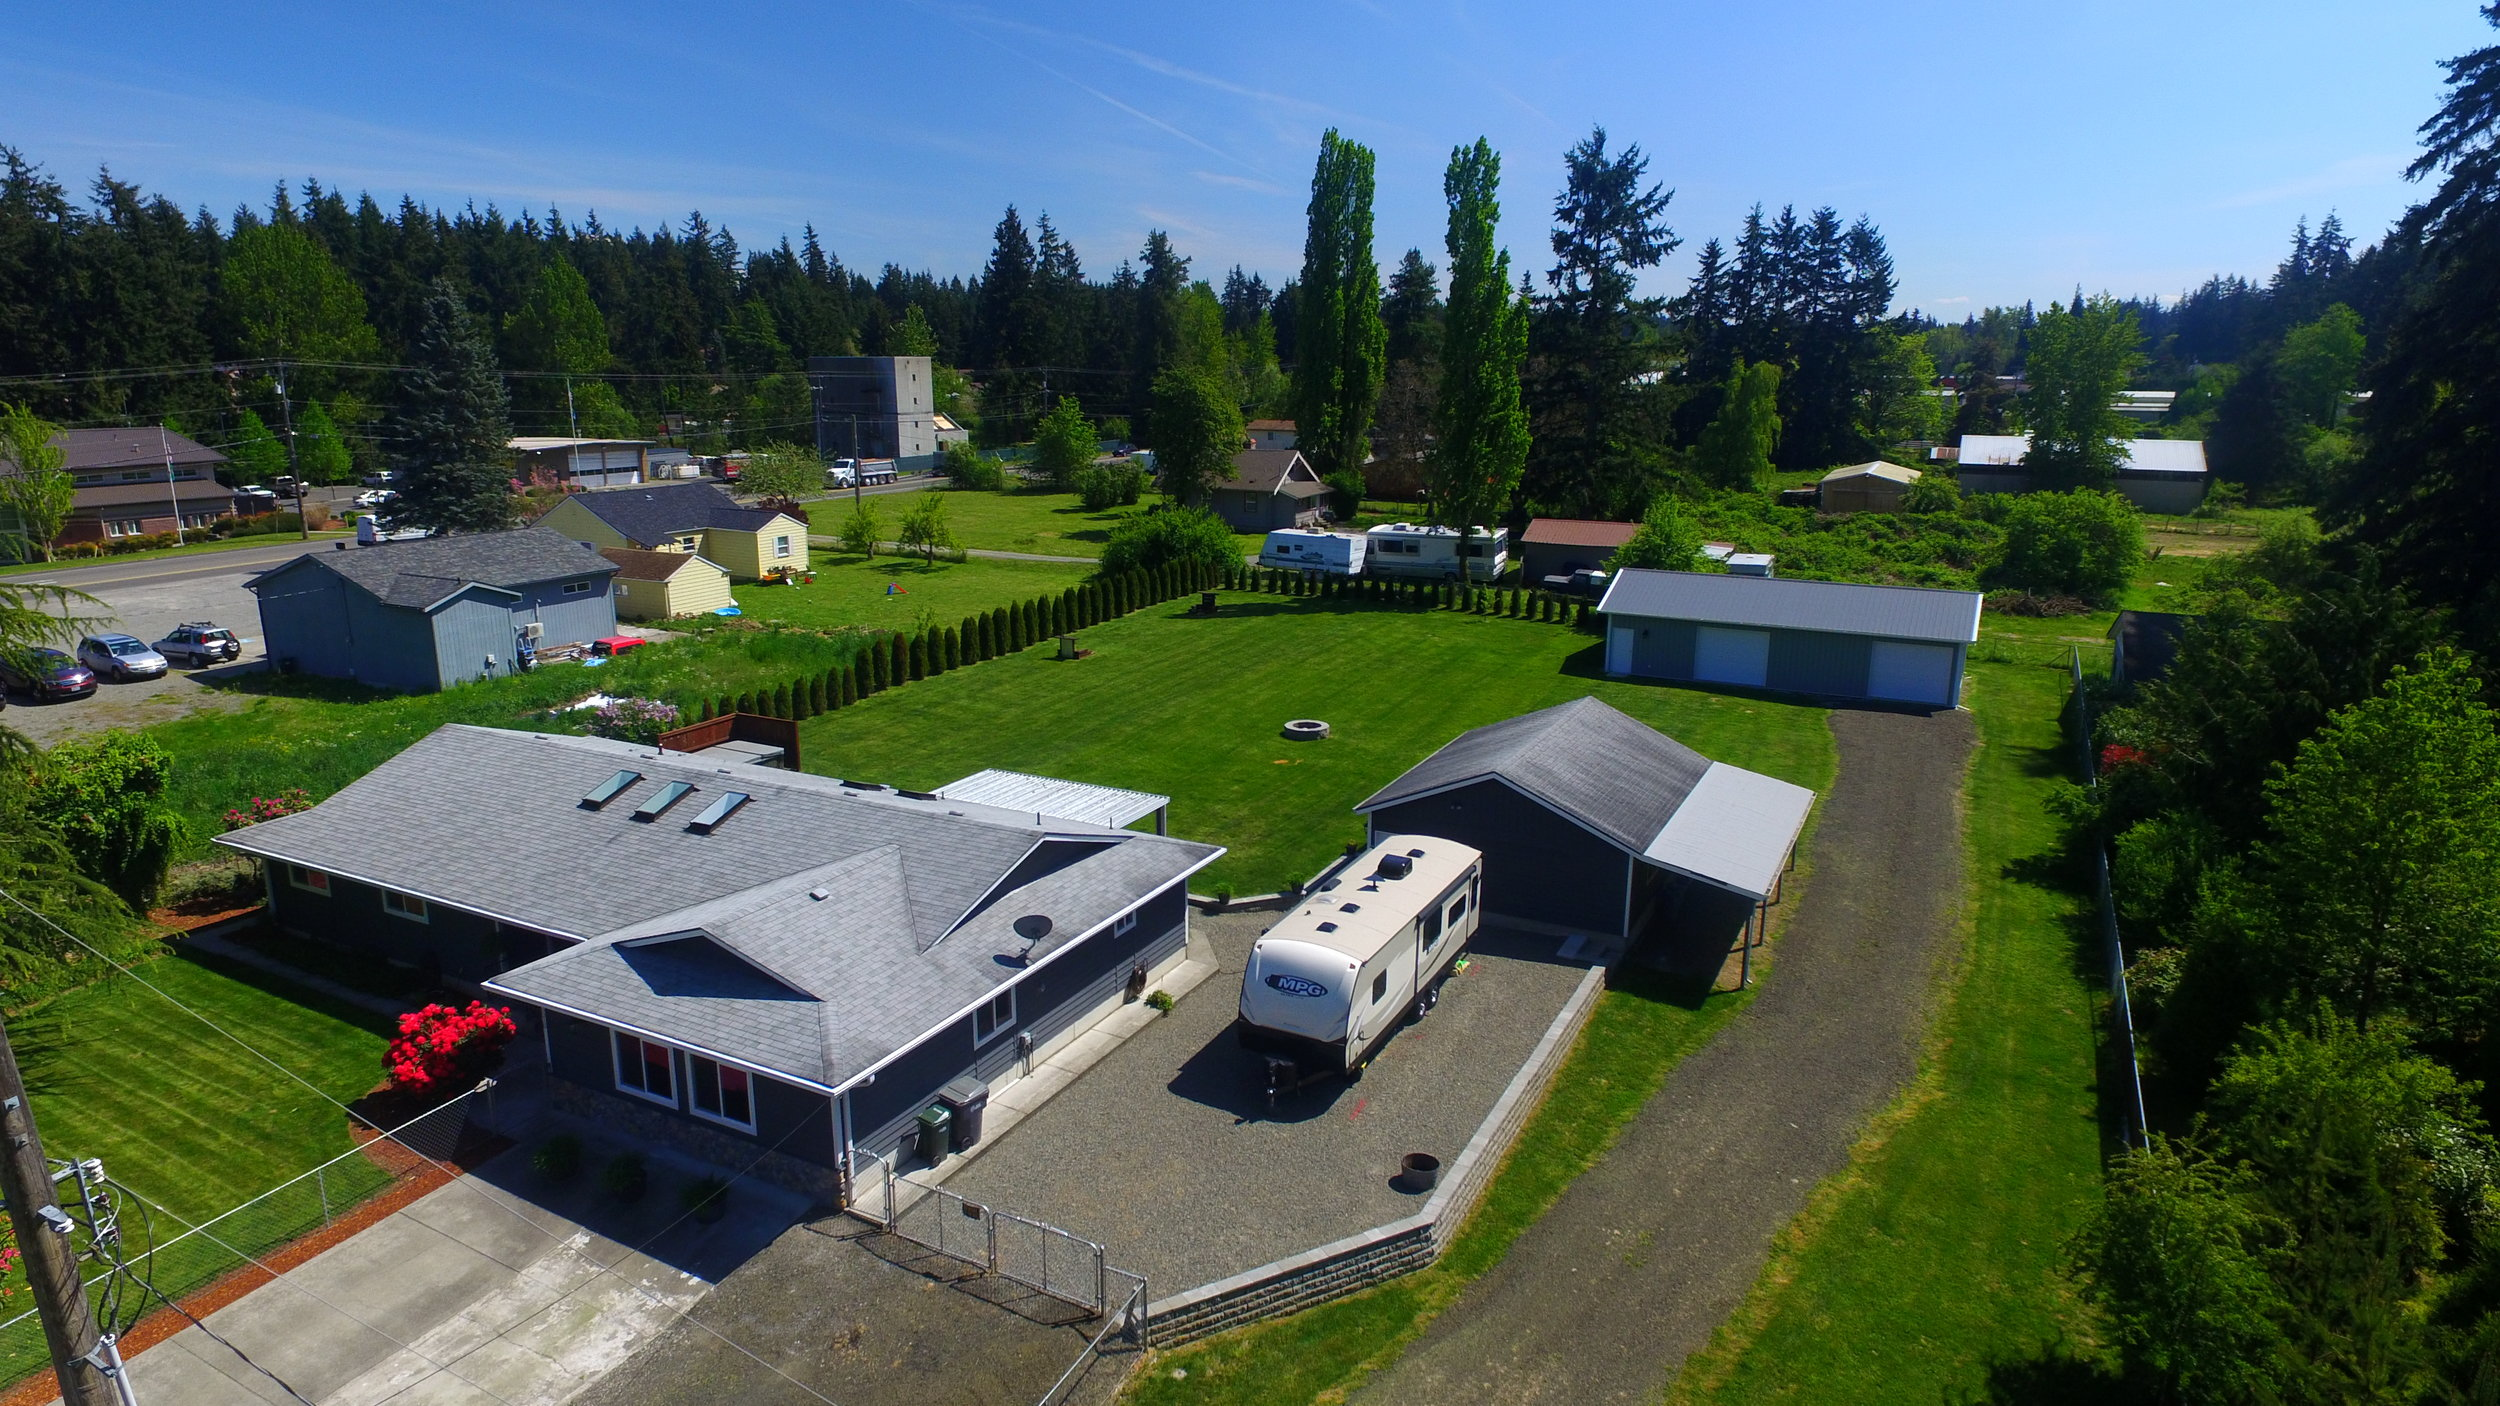 Lot includes 2 gated driveways, paved parking, detached garage with lean-to and upper storage area, new shop with 2 bay doors, covered patio, RV parking, pad & privacy screen & wiring for a hot tub, fencing, fruit trees, garden beds, fire pit, horseshoe pits, and a huge lawn.